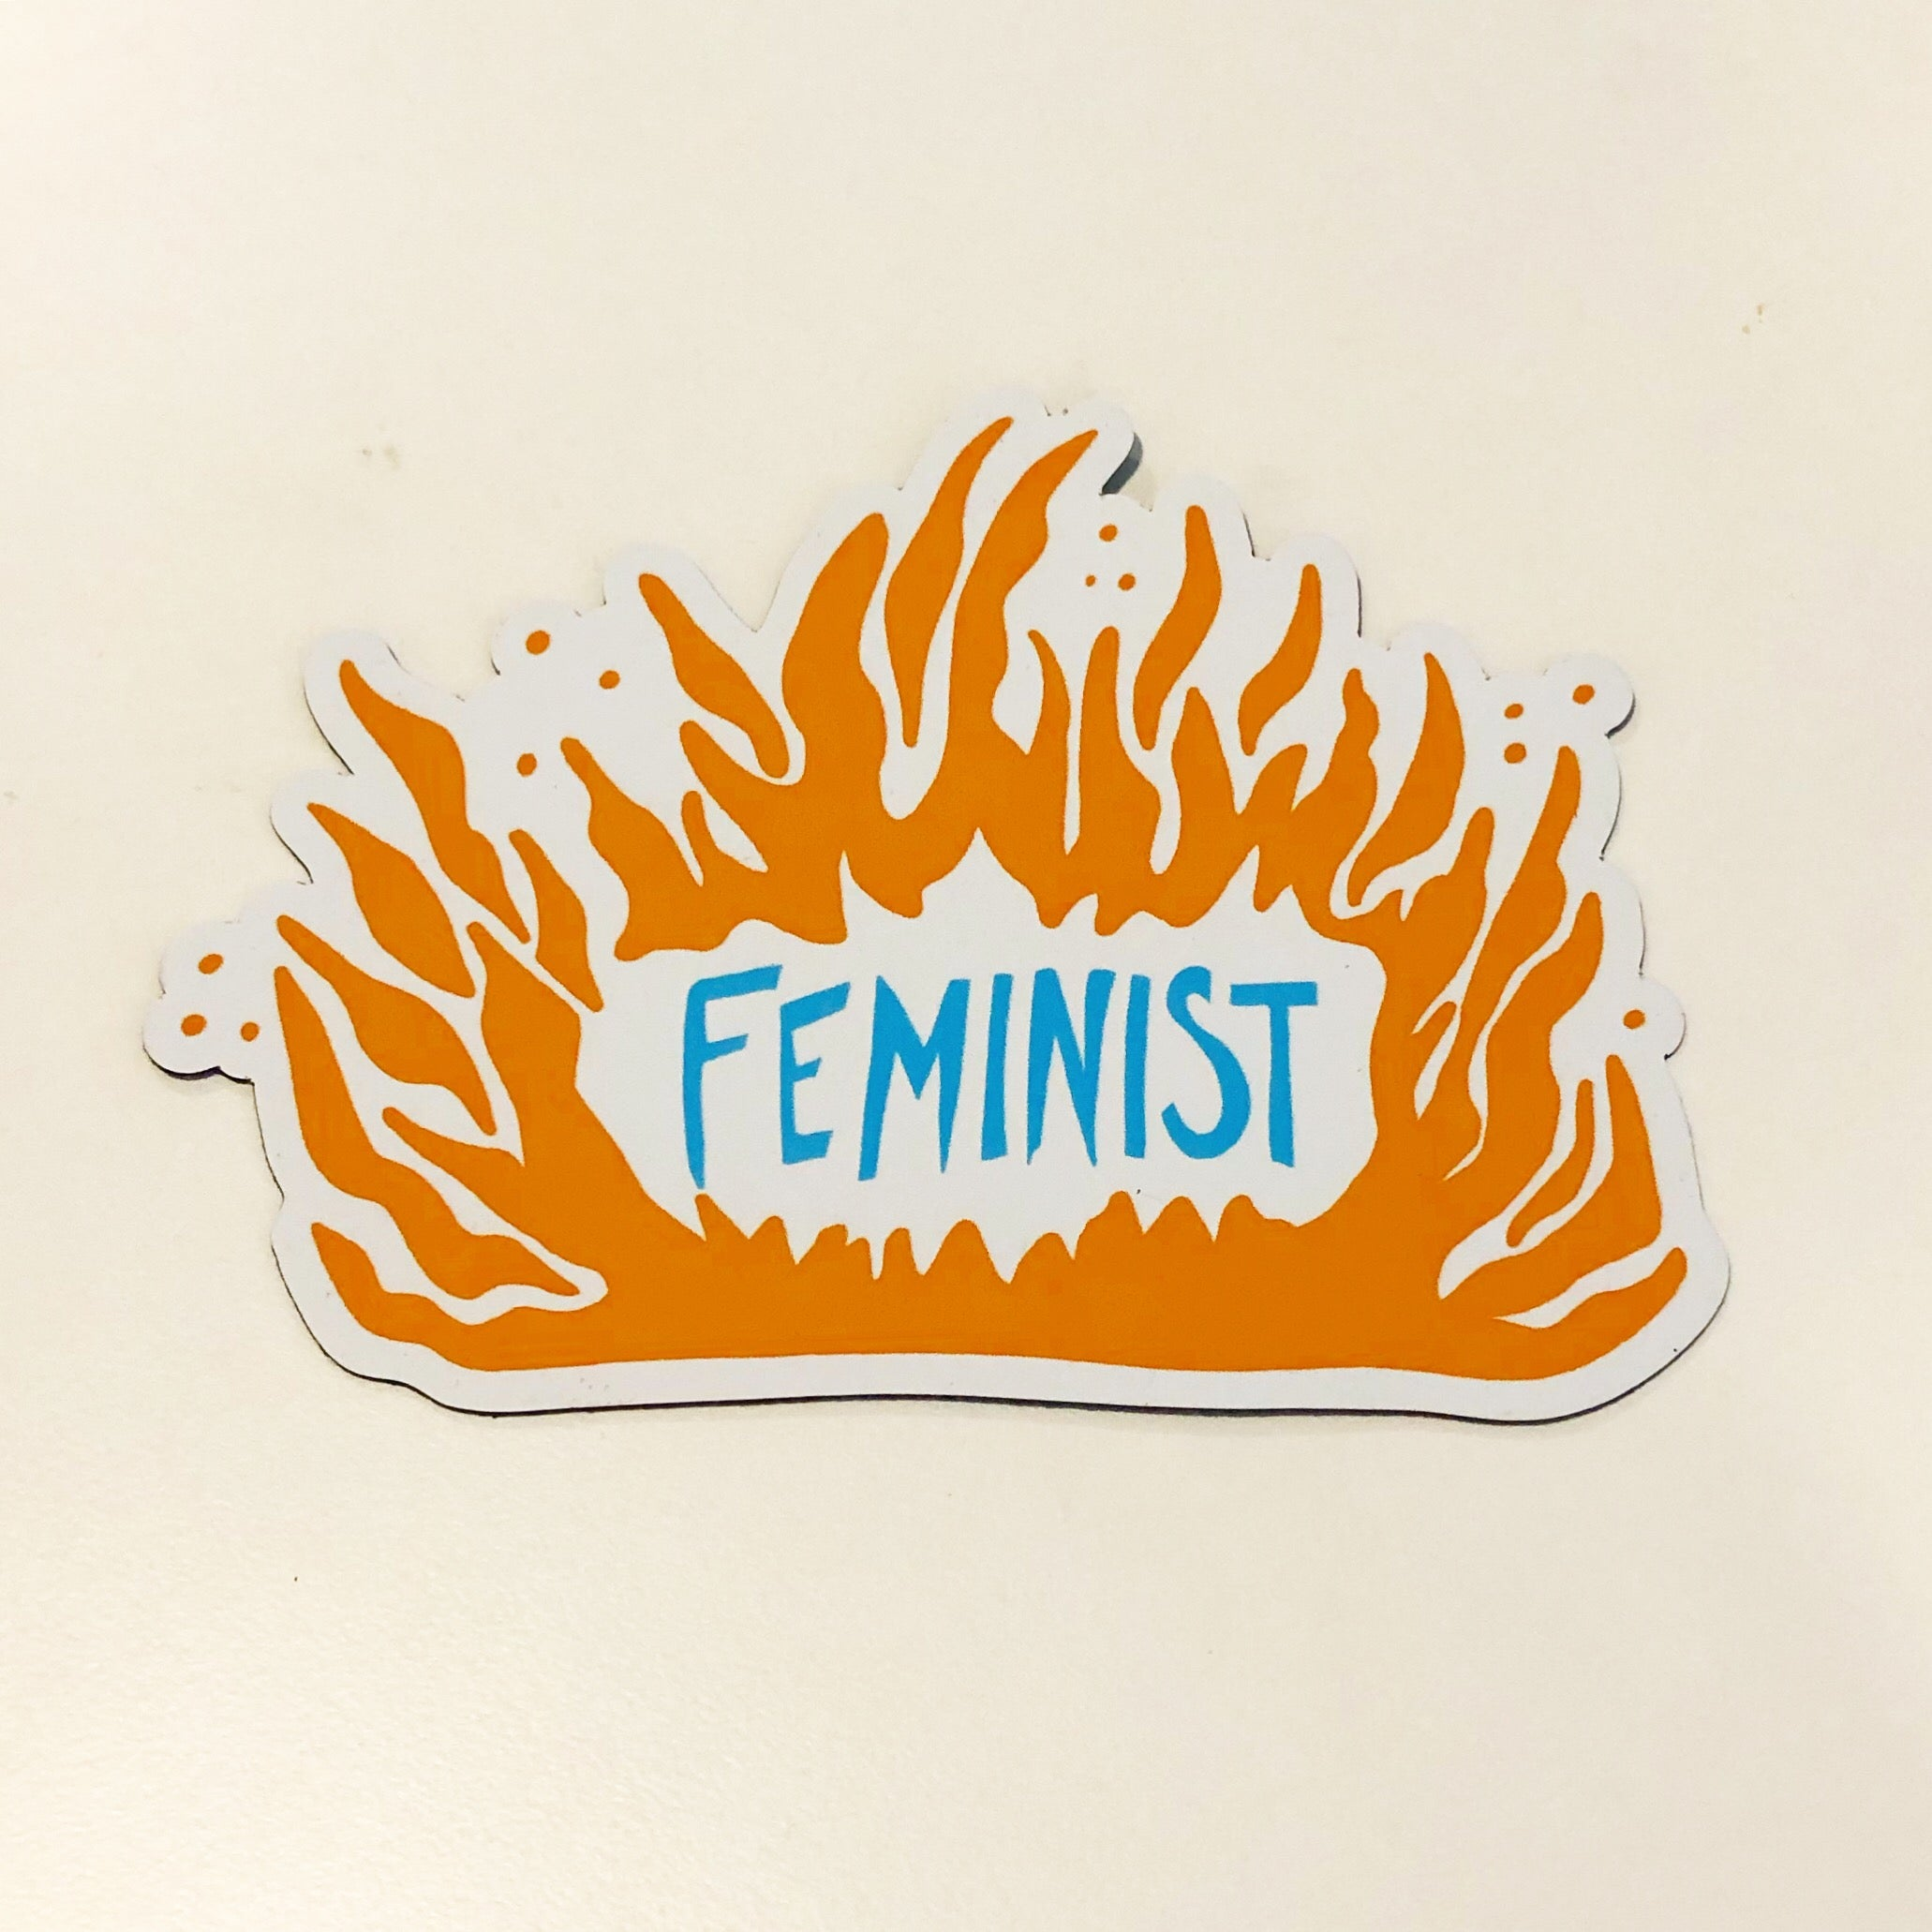 Feminist - MAGNET- stickers & magnets